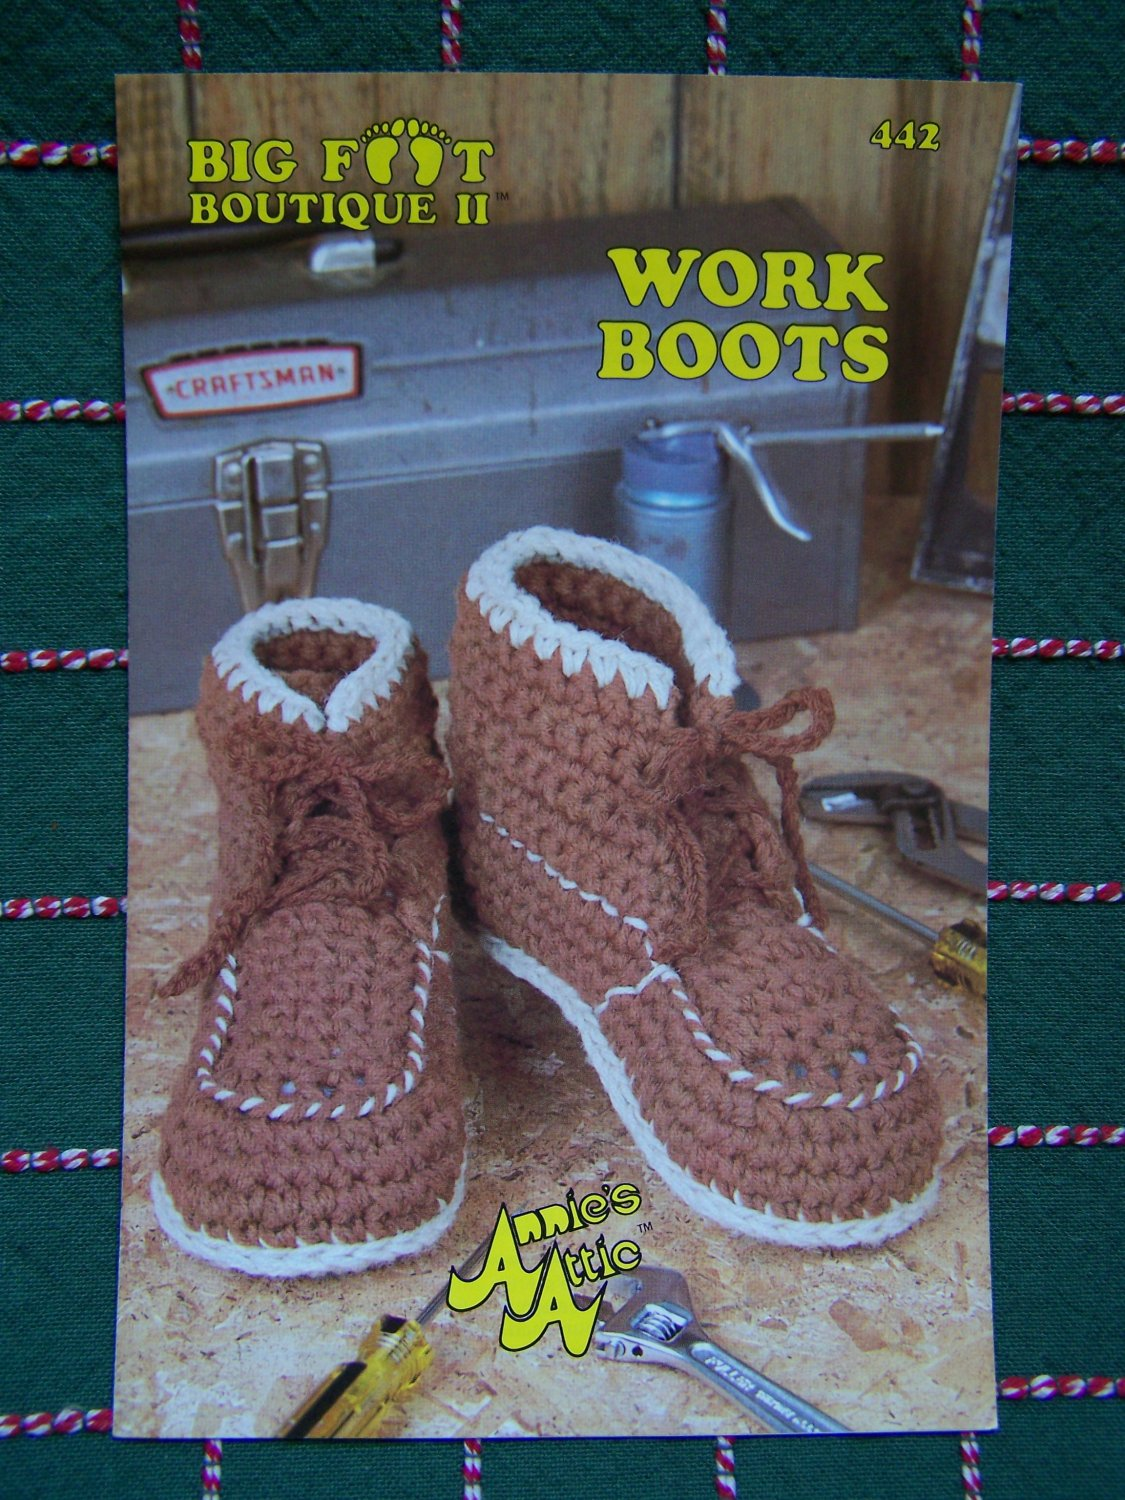 USA 0 S&H Vintage Adult & Child Sizes Crochet Work Boots Pattern Annie's Attic 442 Big Foot